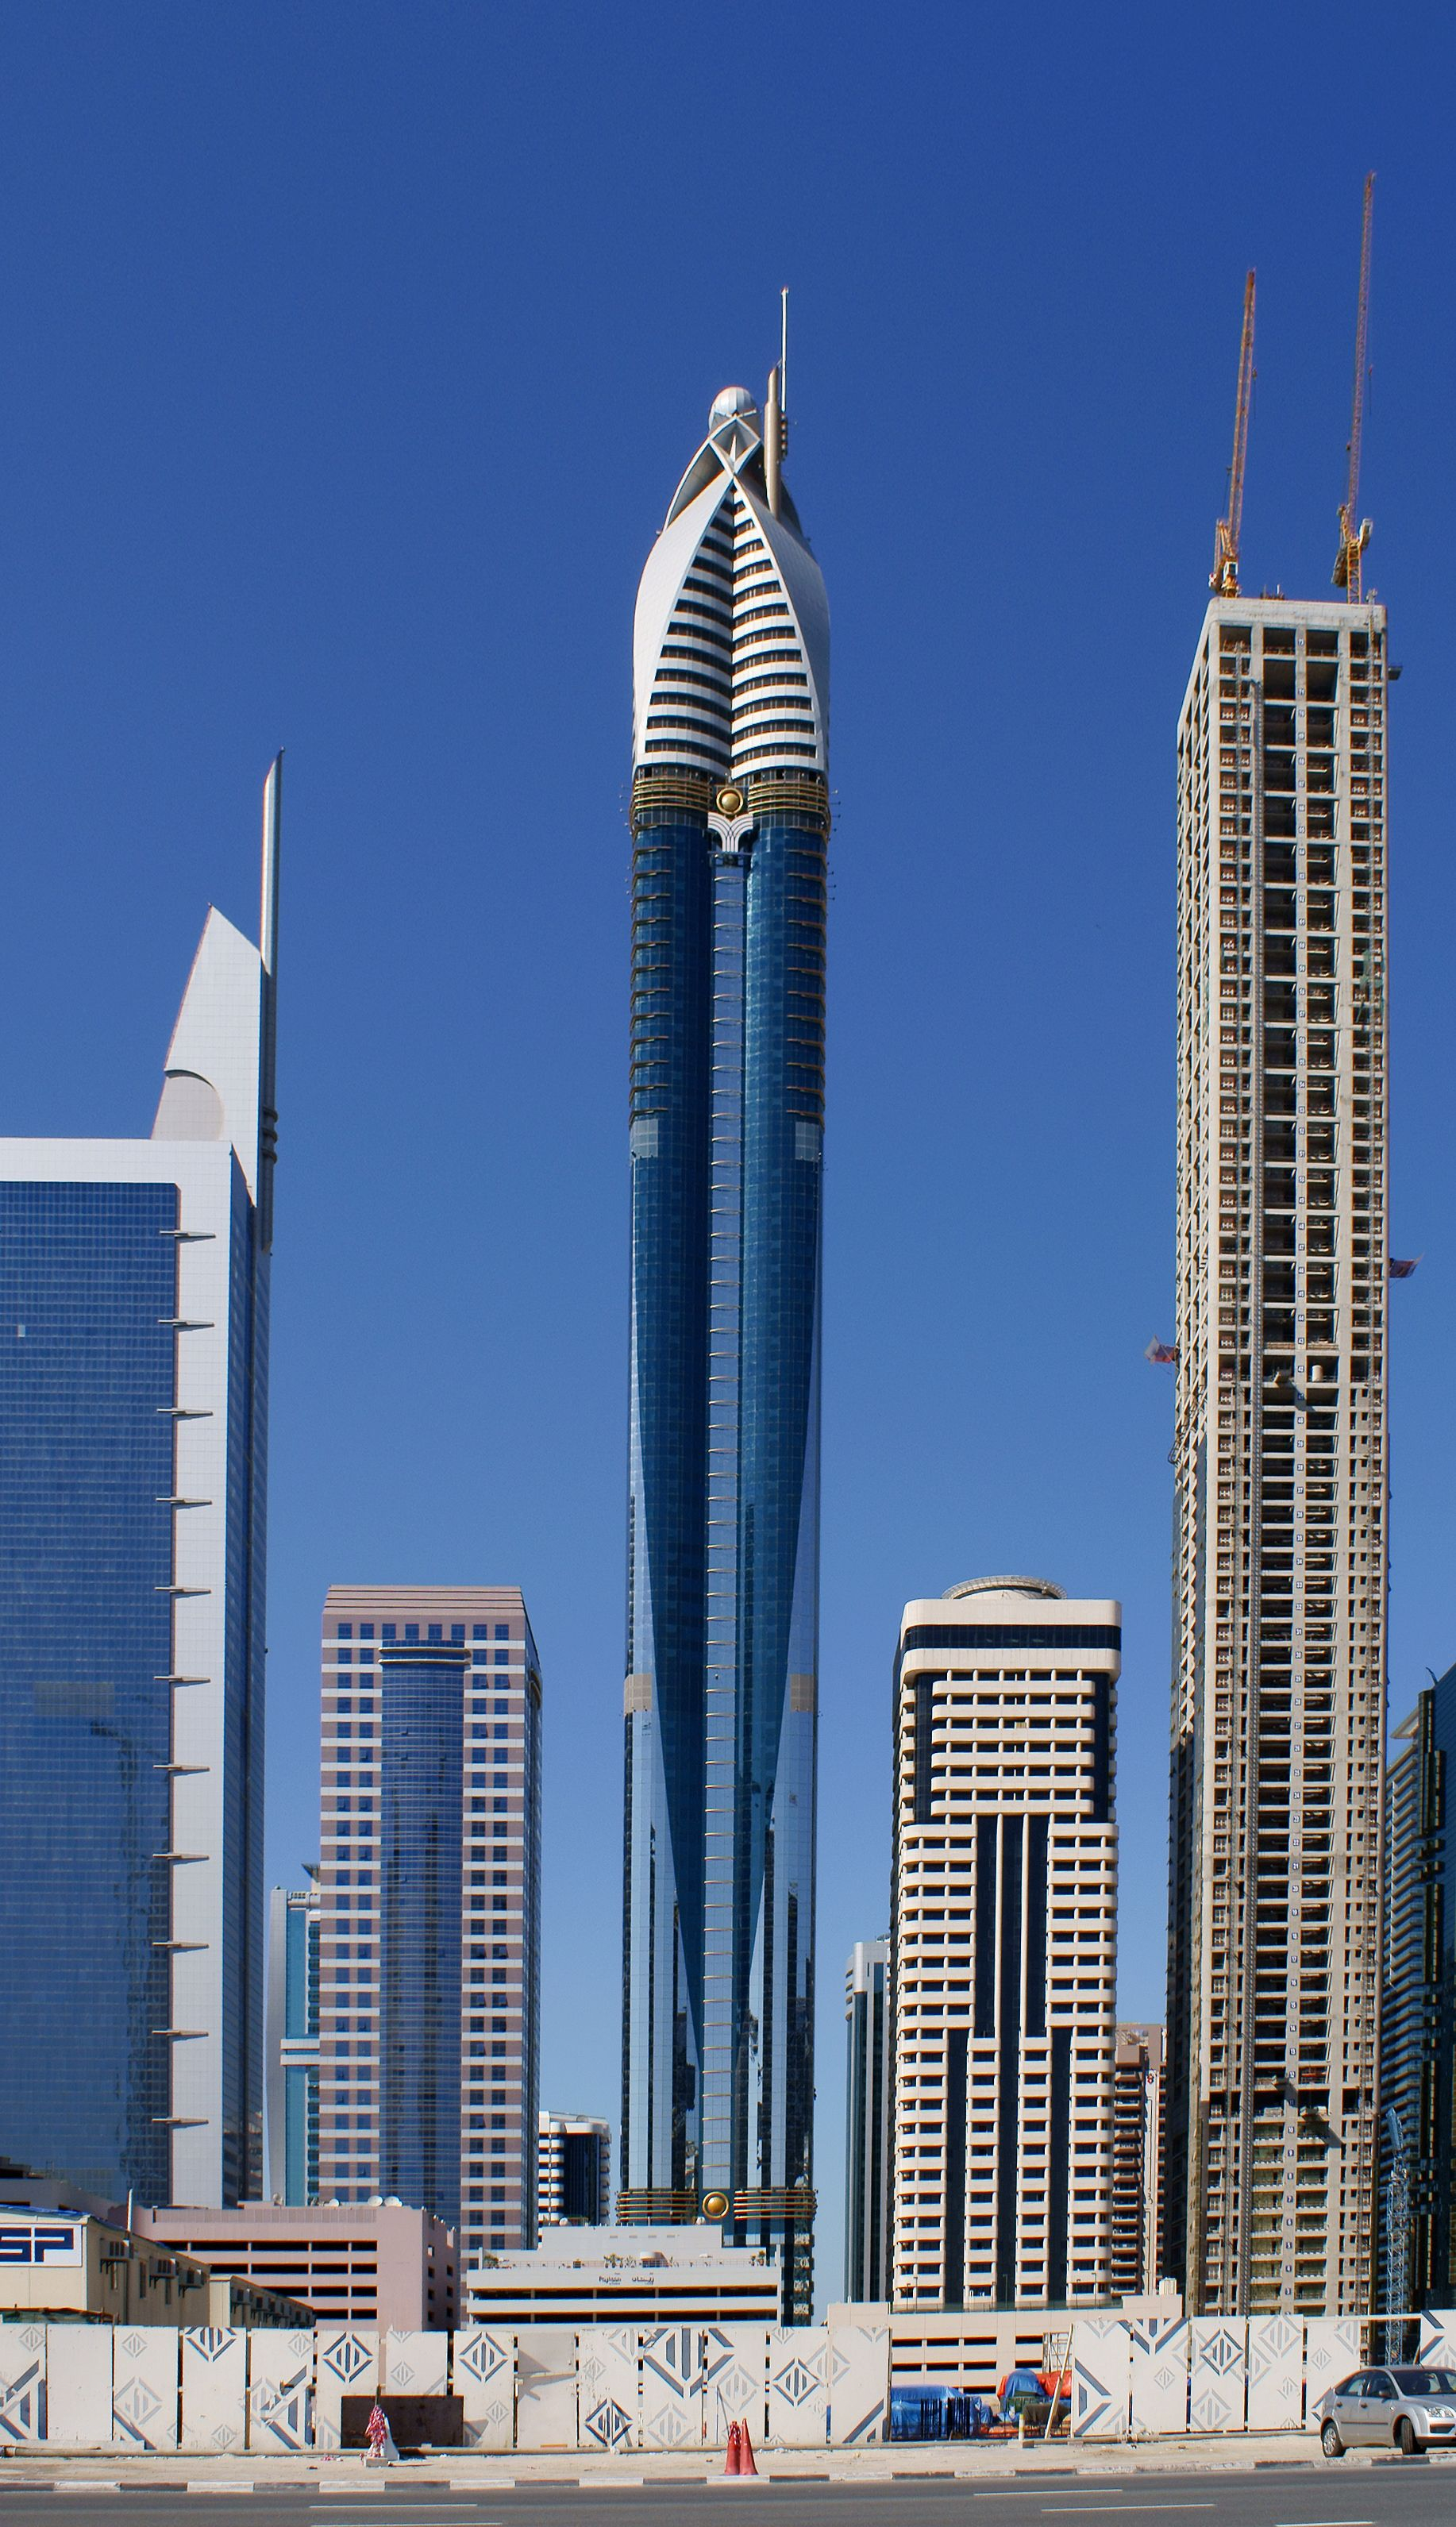 The rose tower with a height of 333 meters currently the Dubai buildings